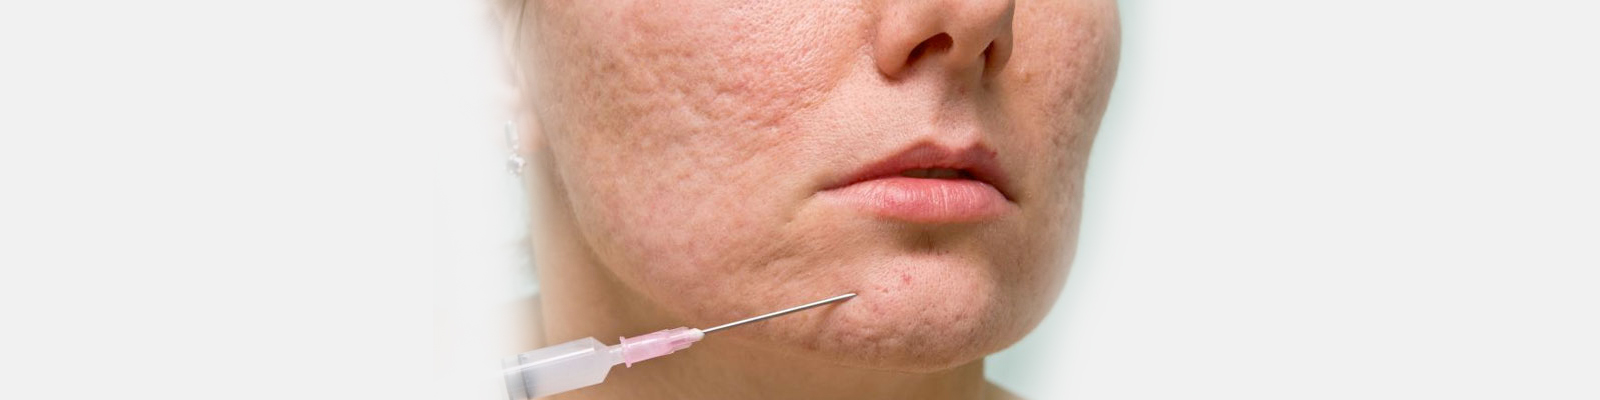 PRP Injection for acne scar